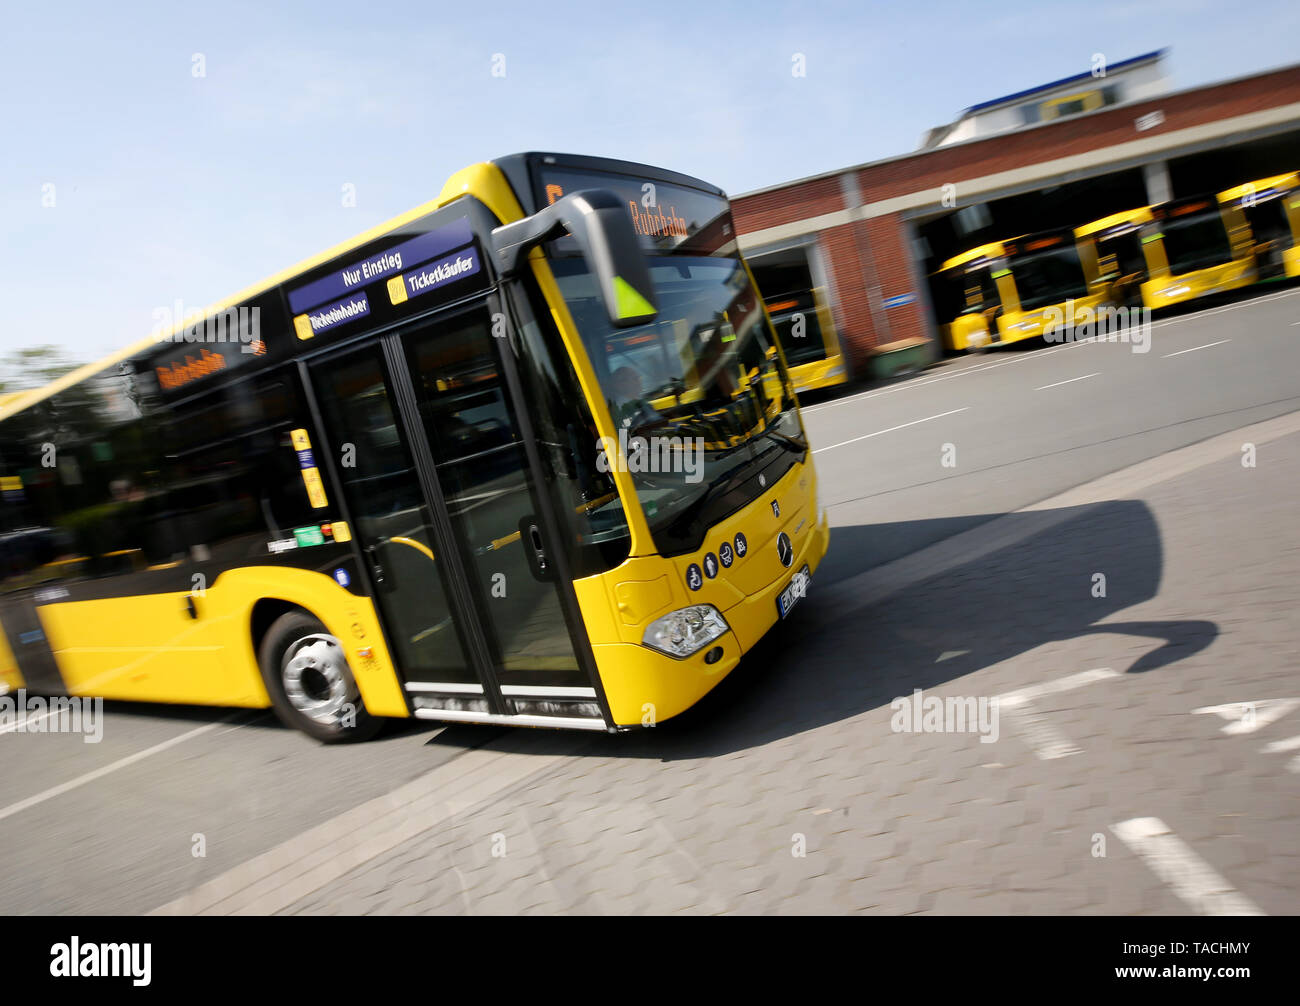 Essen, Germany. 24th May, 2019. New hybrid buses are presented at the Ruhrbahn depot. The total of 45 buses with 'mild hybrid technology' meet the currently cleanest diesel environmental standard, the presentation said. Credit: Roland Weihrauch/dpa/Alamy Live News - Stock Image